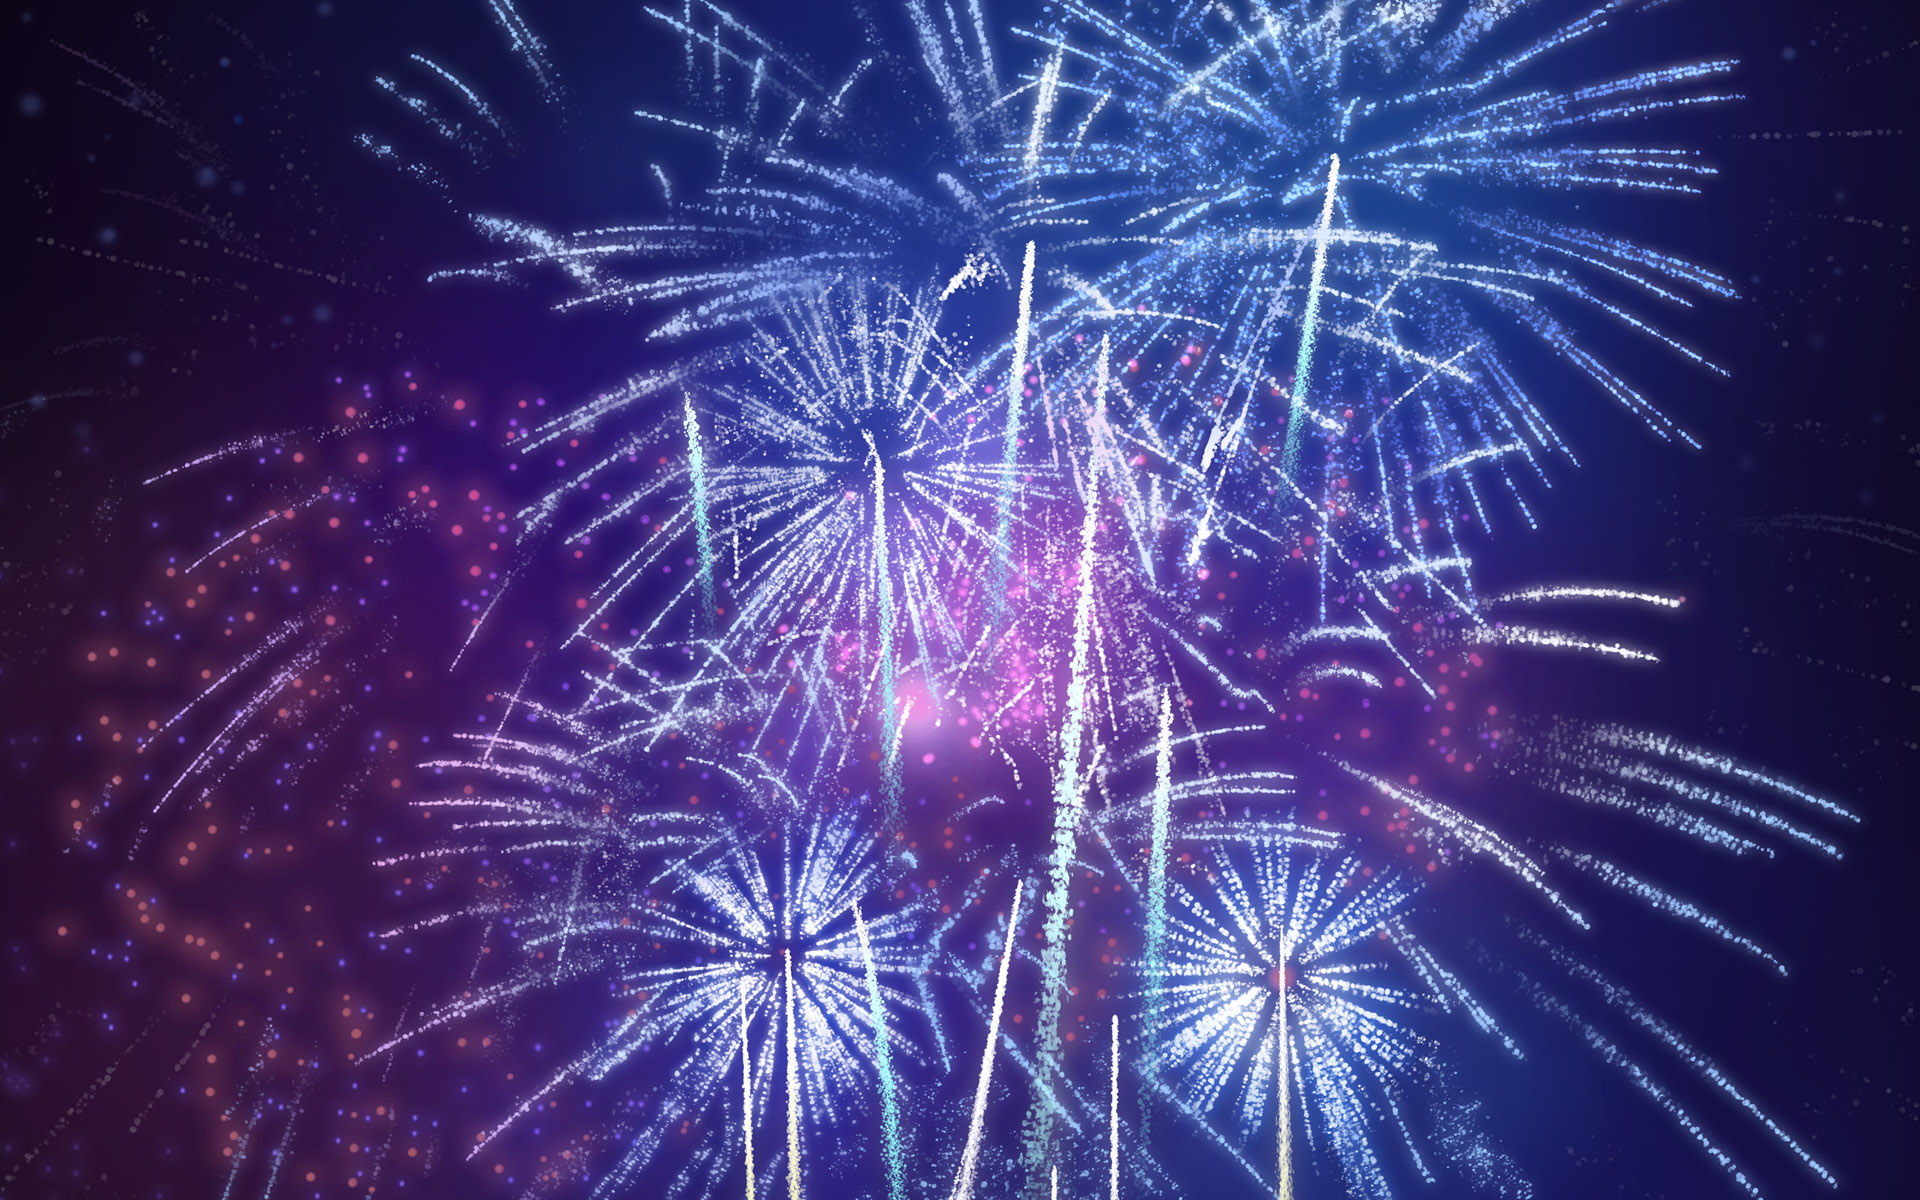 Fireworks Wallpaper: Wallpaper Wishlist Free Desktop Wallpapers 1920x1200px